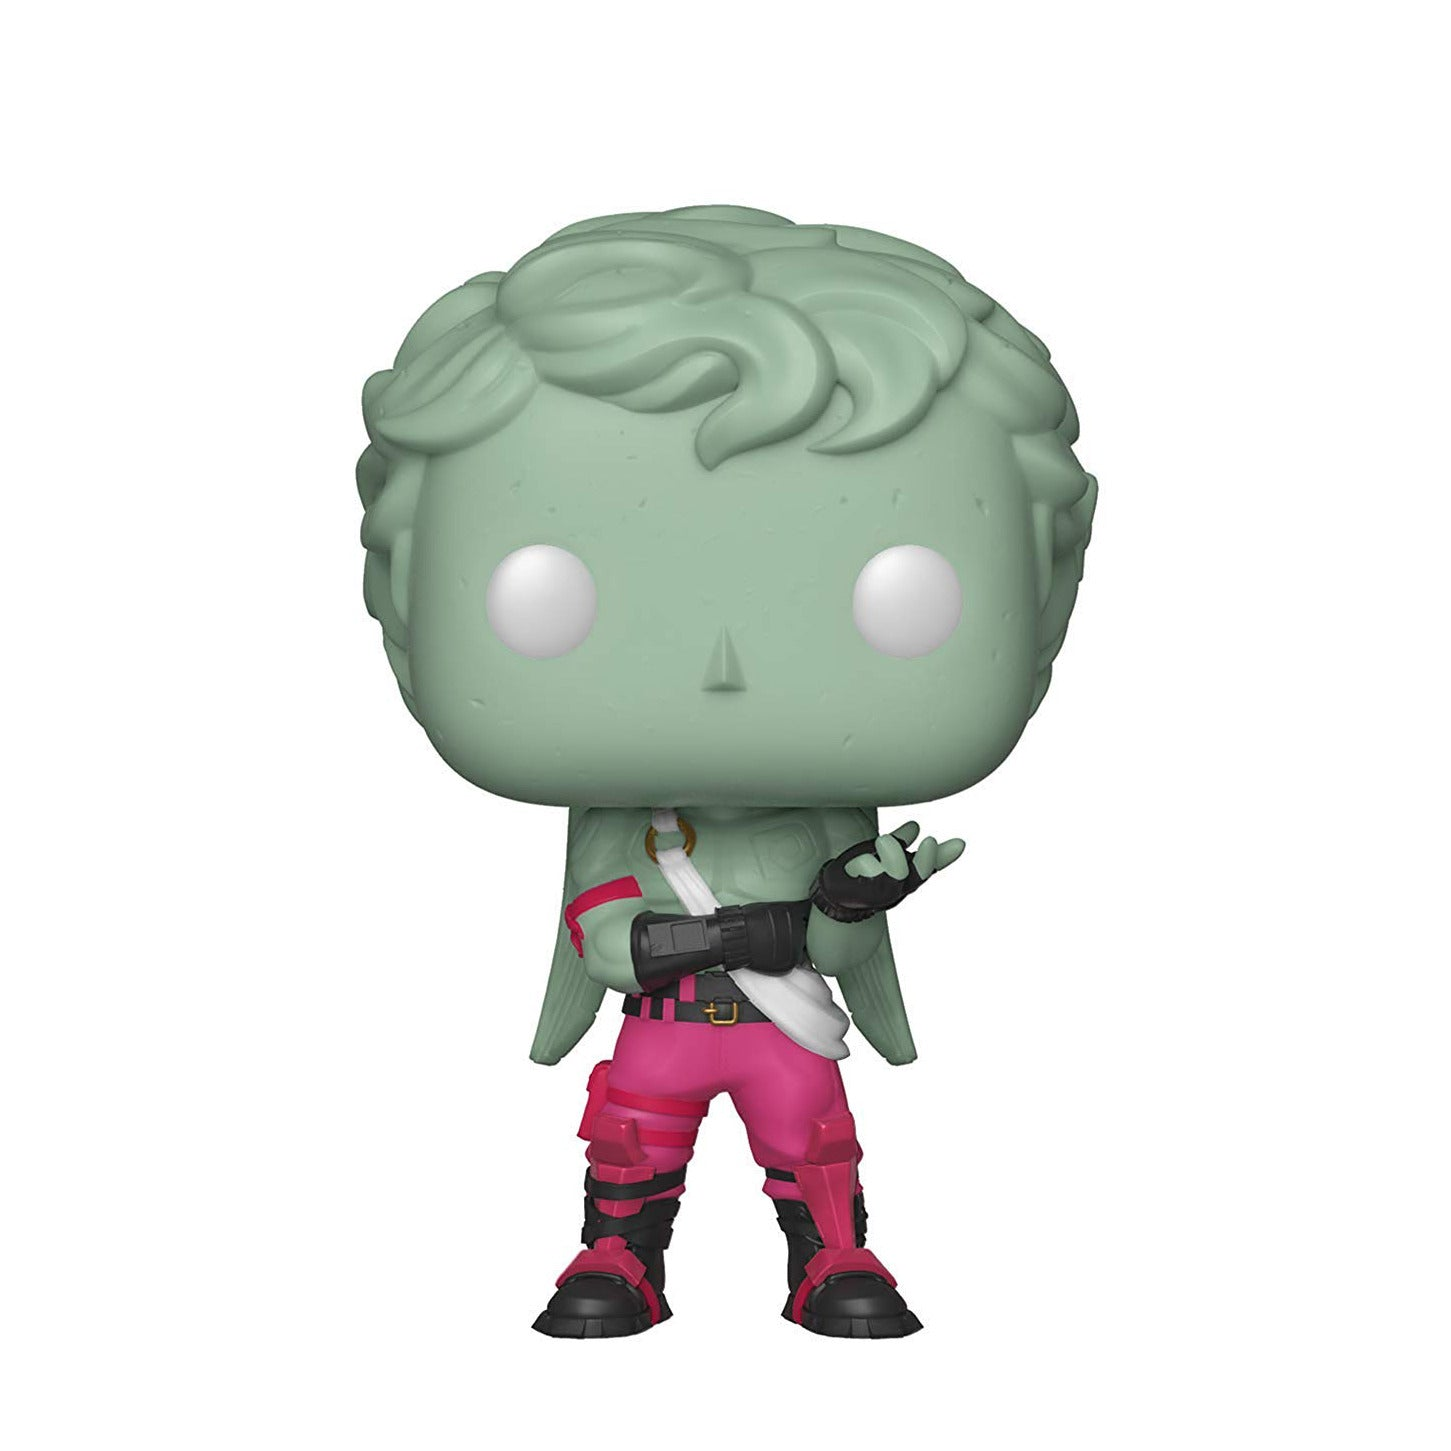 Fortnite Love Ranger Pop! Games Vinyl Figure